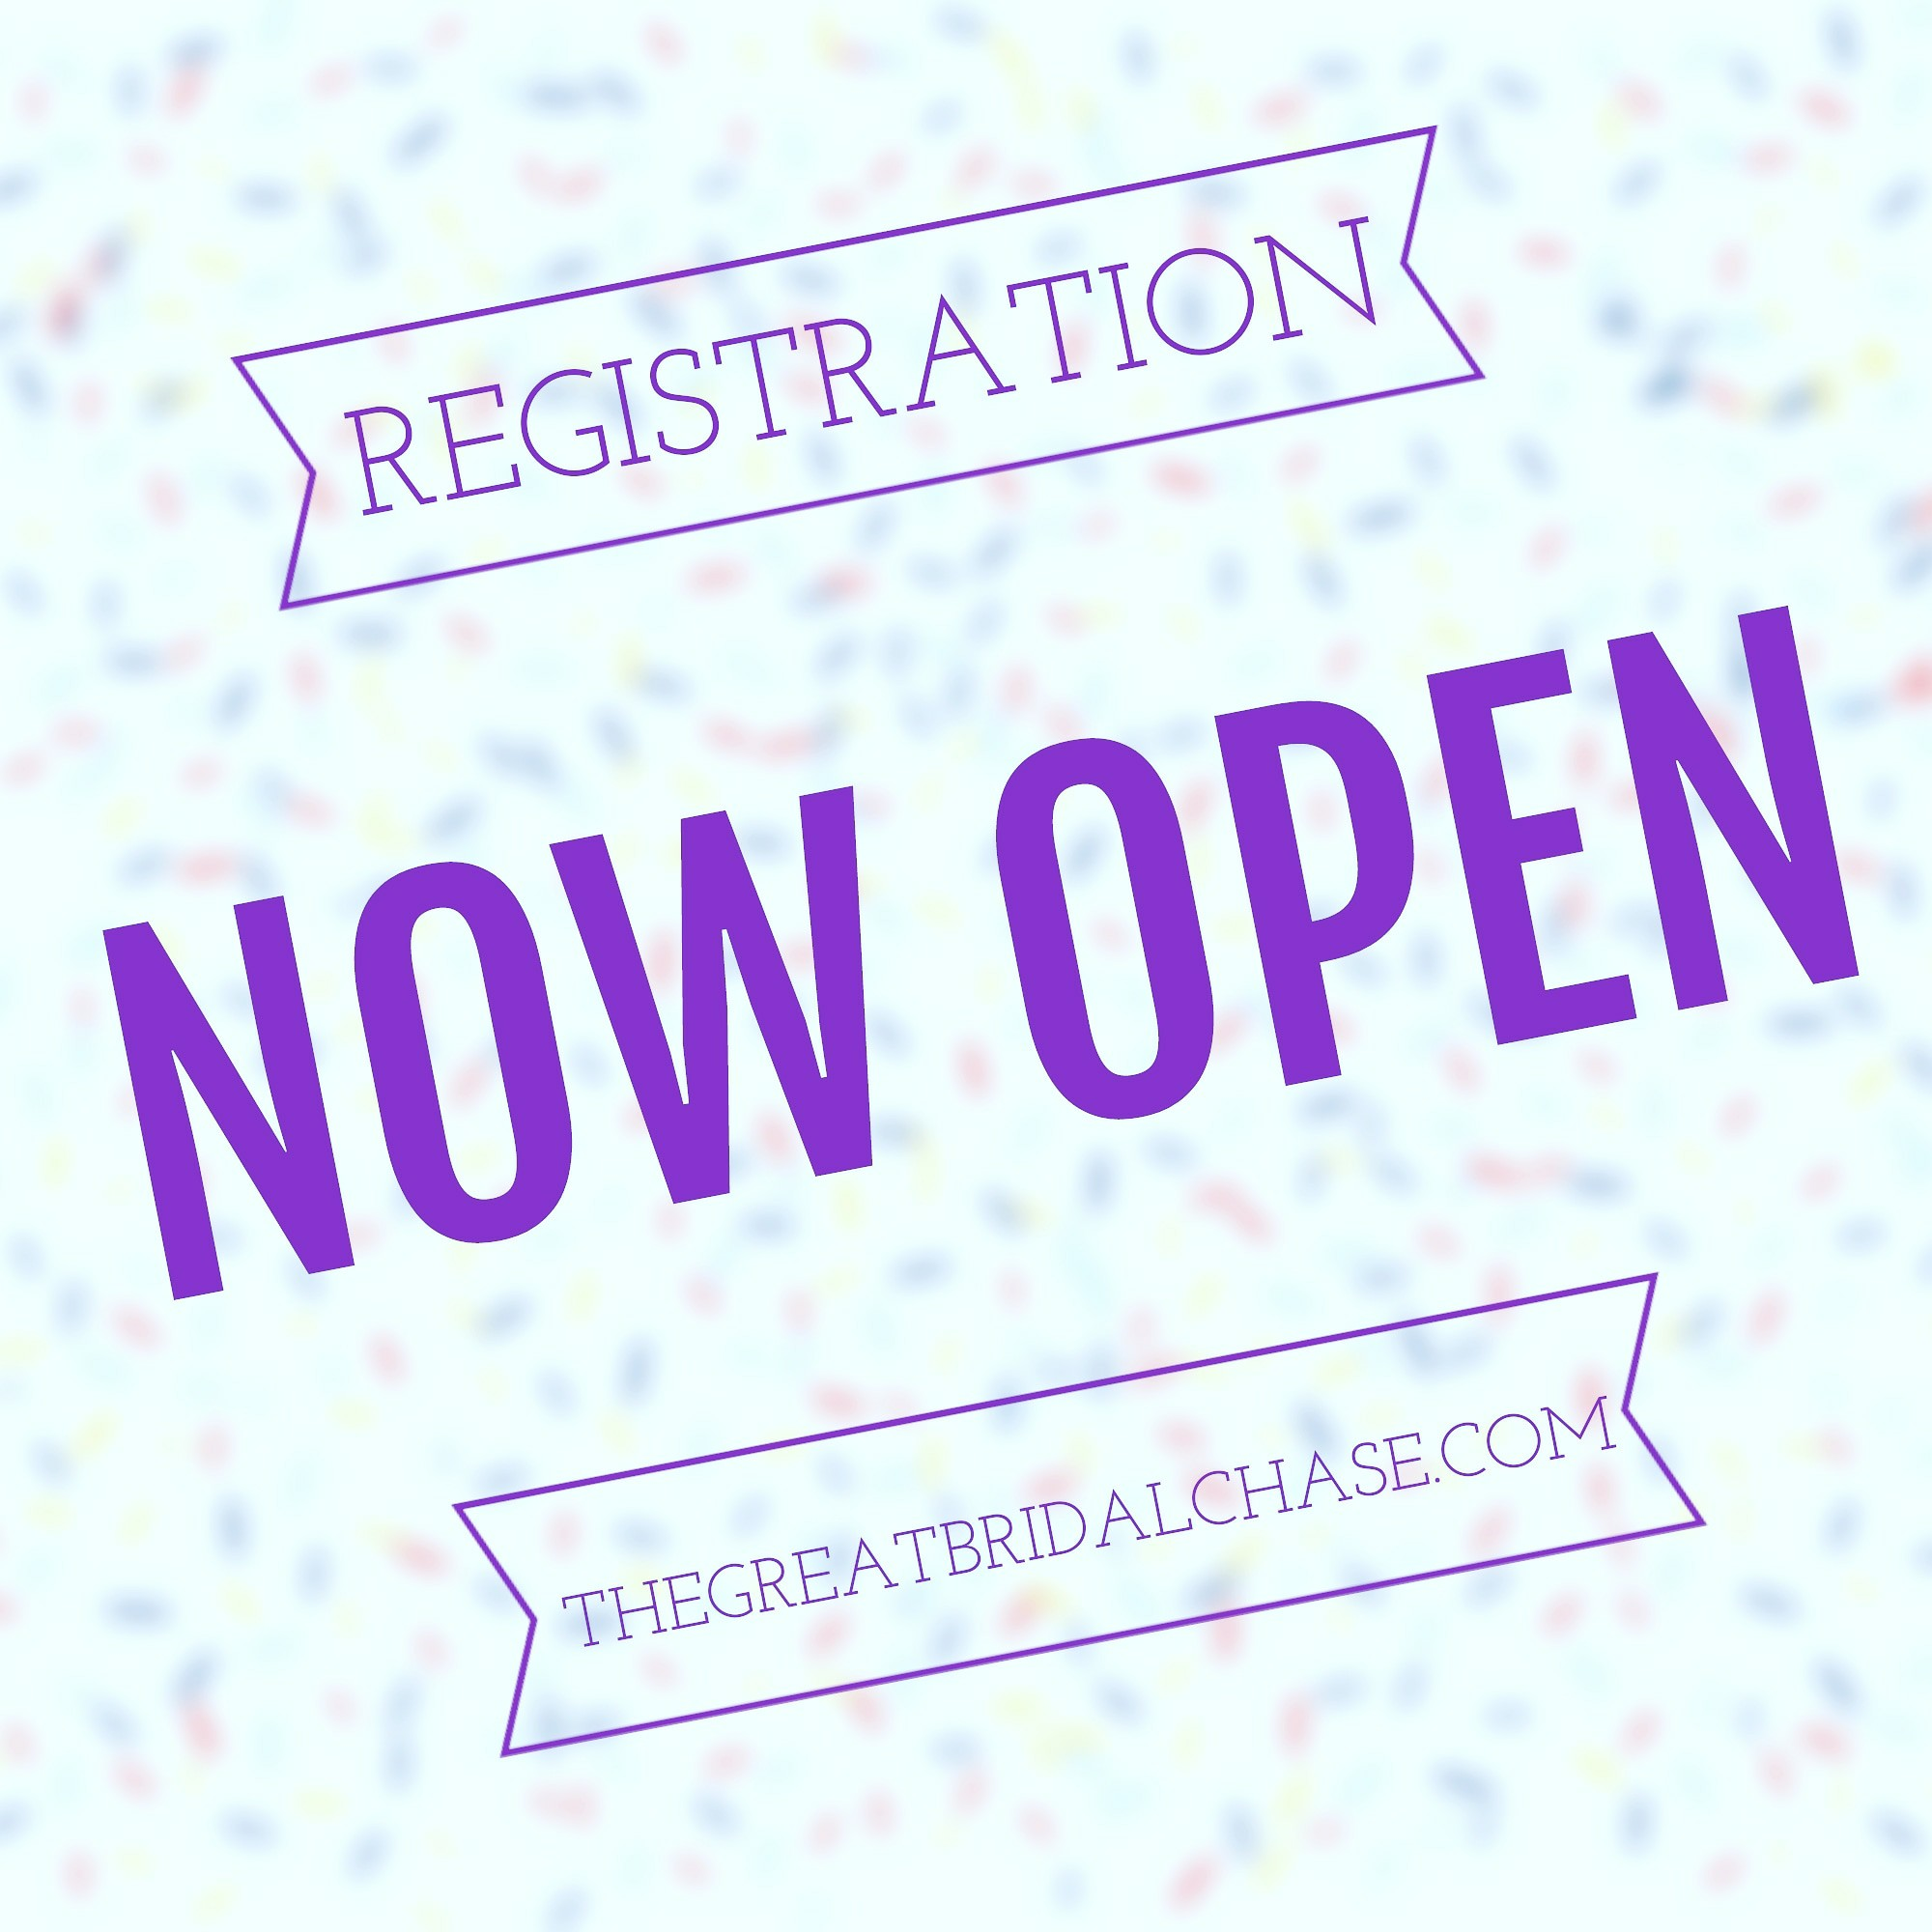 Registration Now Open.jpg